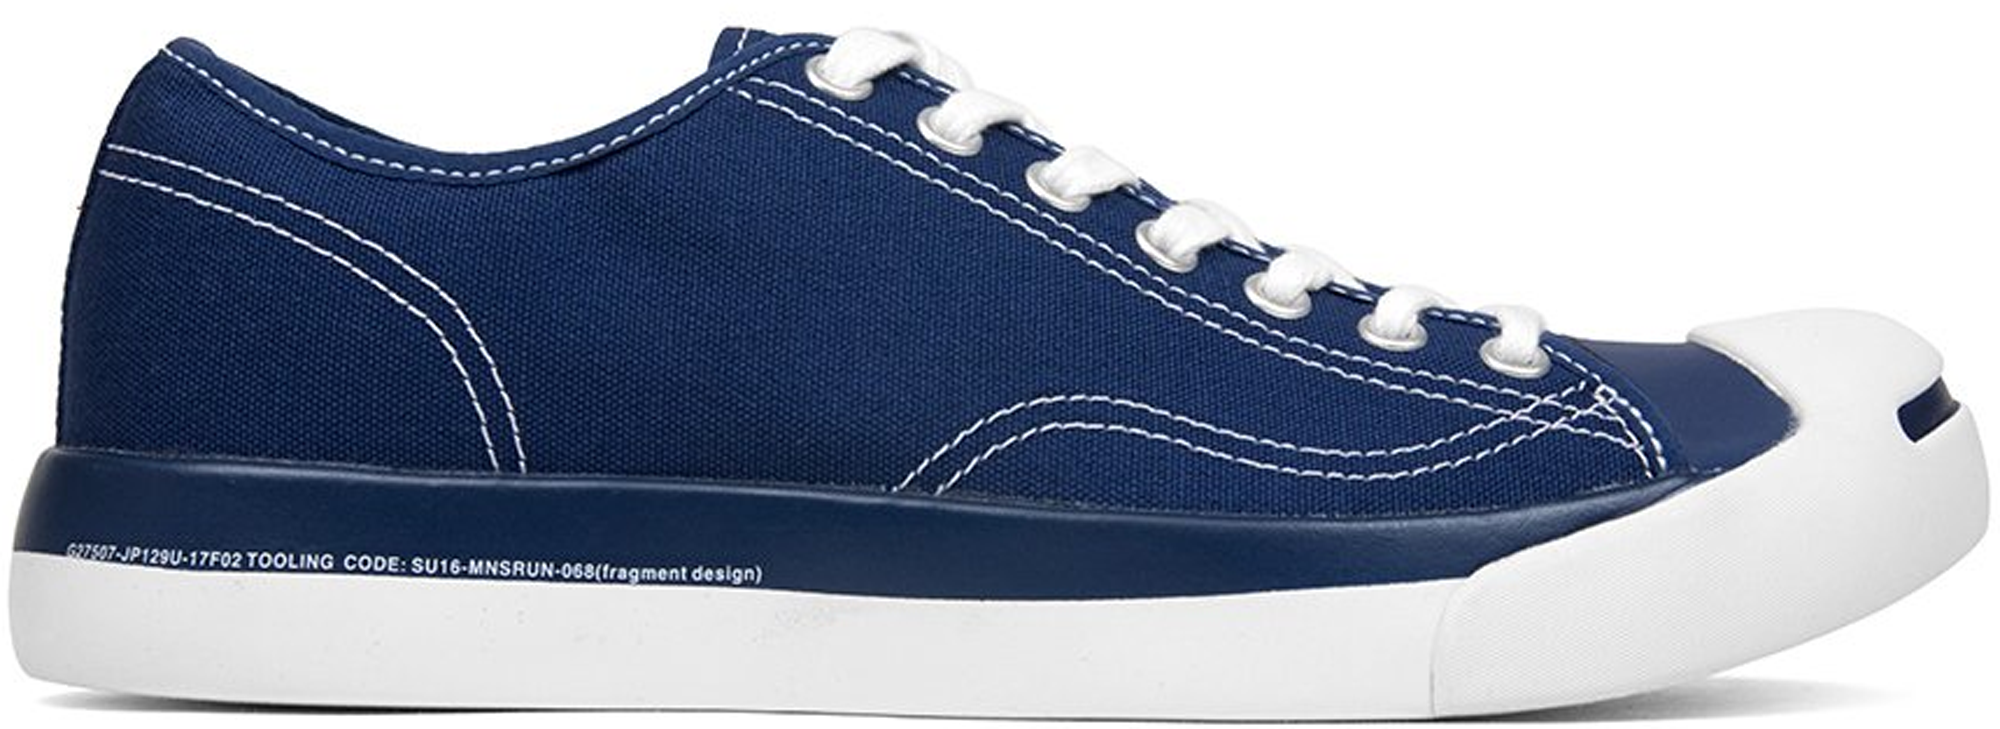 Converse Jack Purcell Modern Fragment